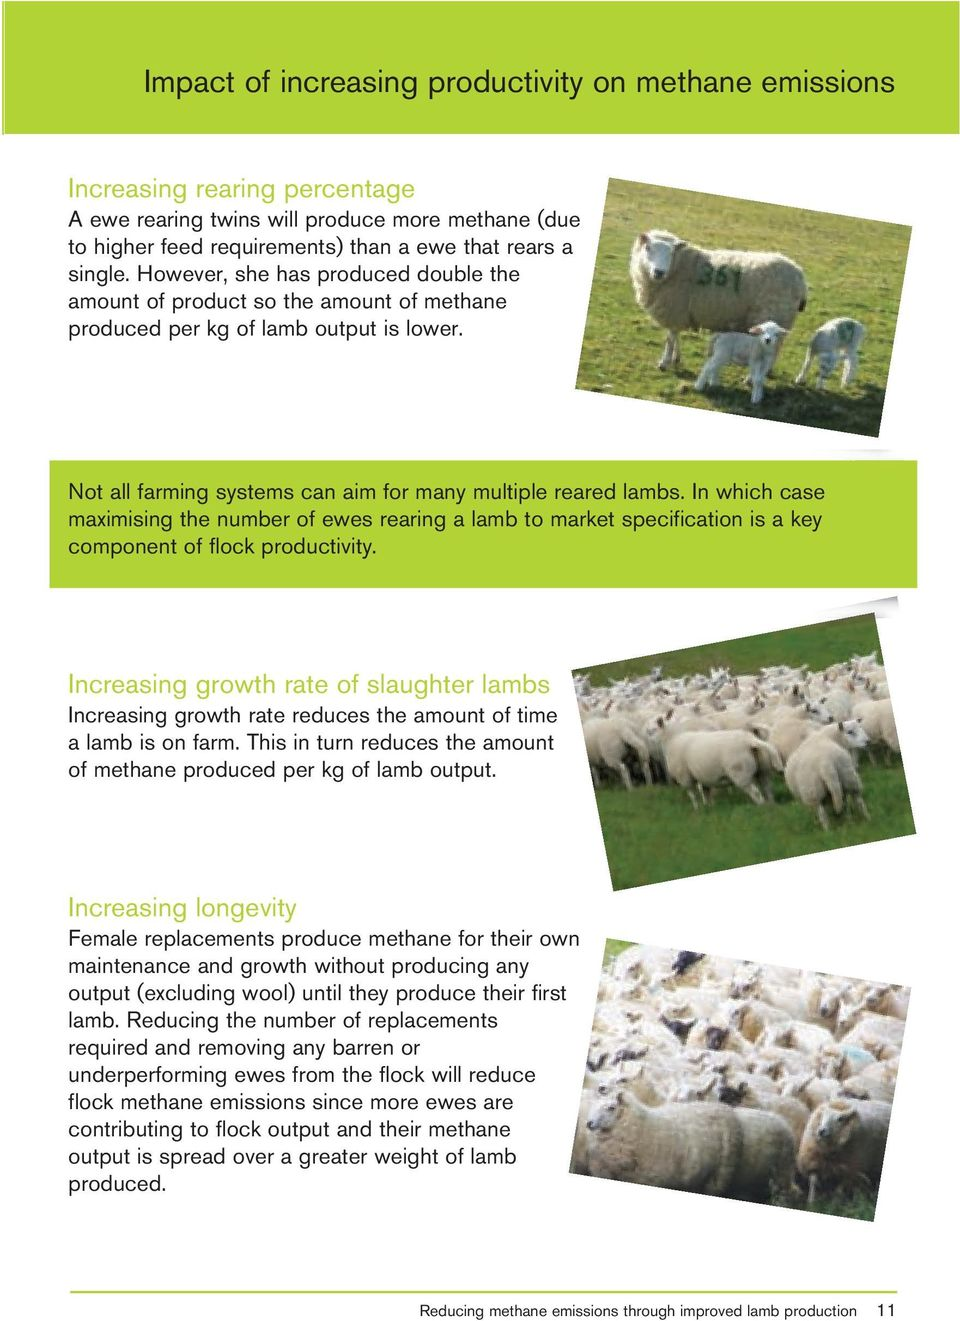 In which case maximising the number of ewes rearing a lamb to market specification is a key component of flock productivity.